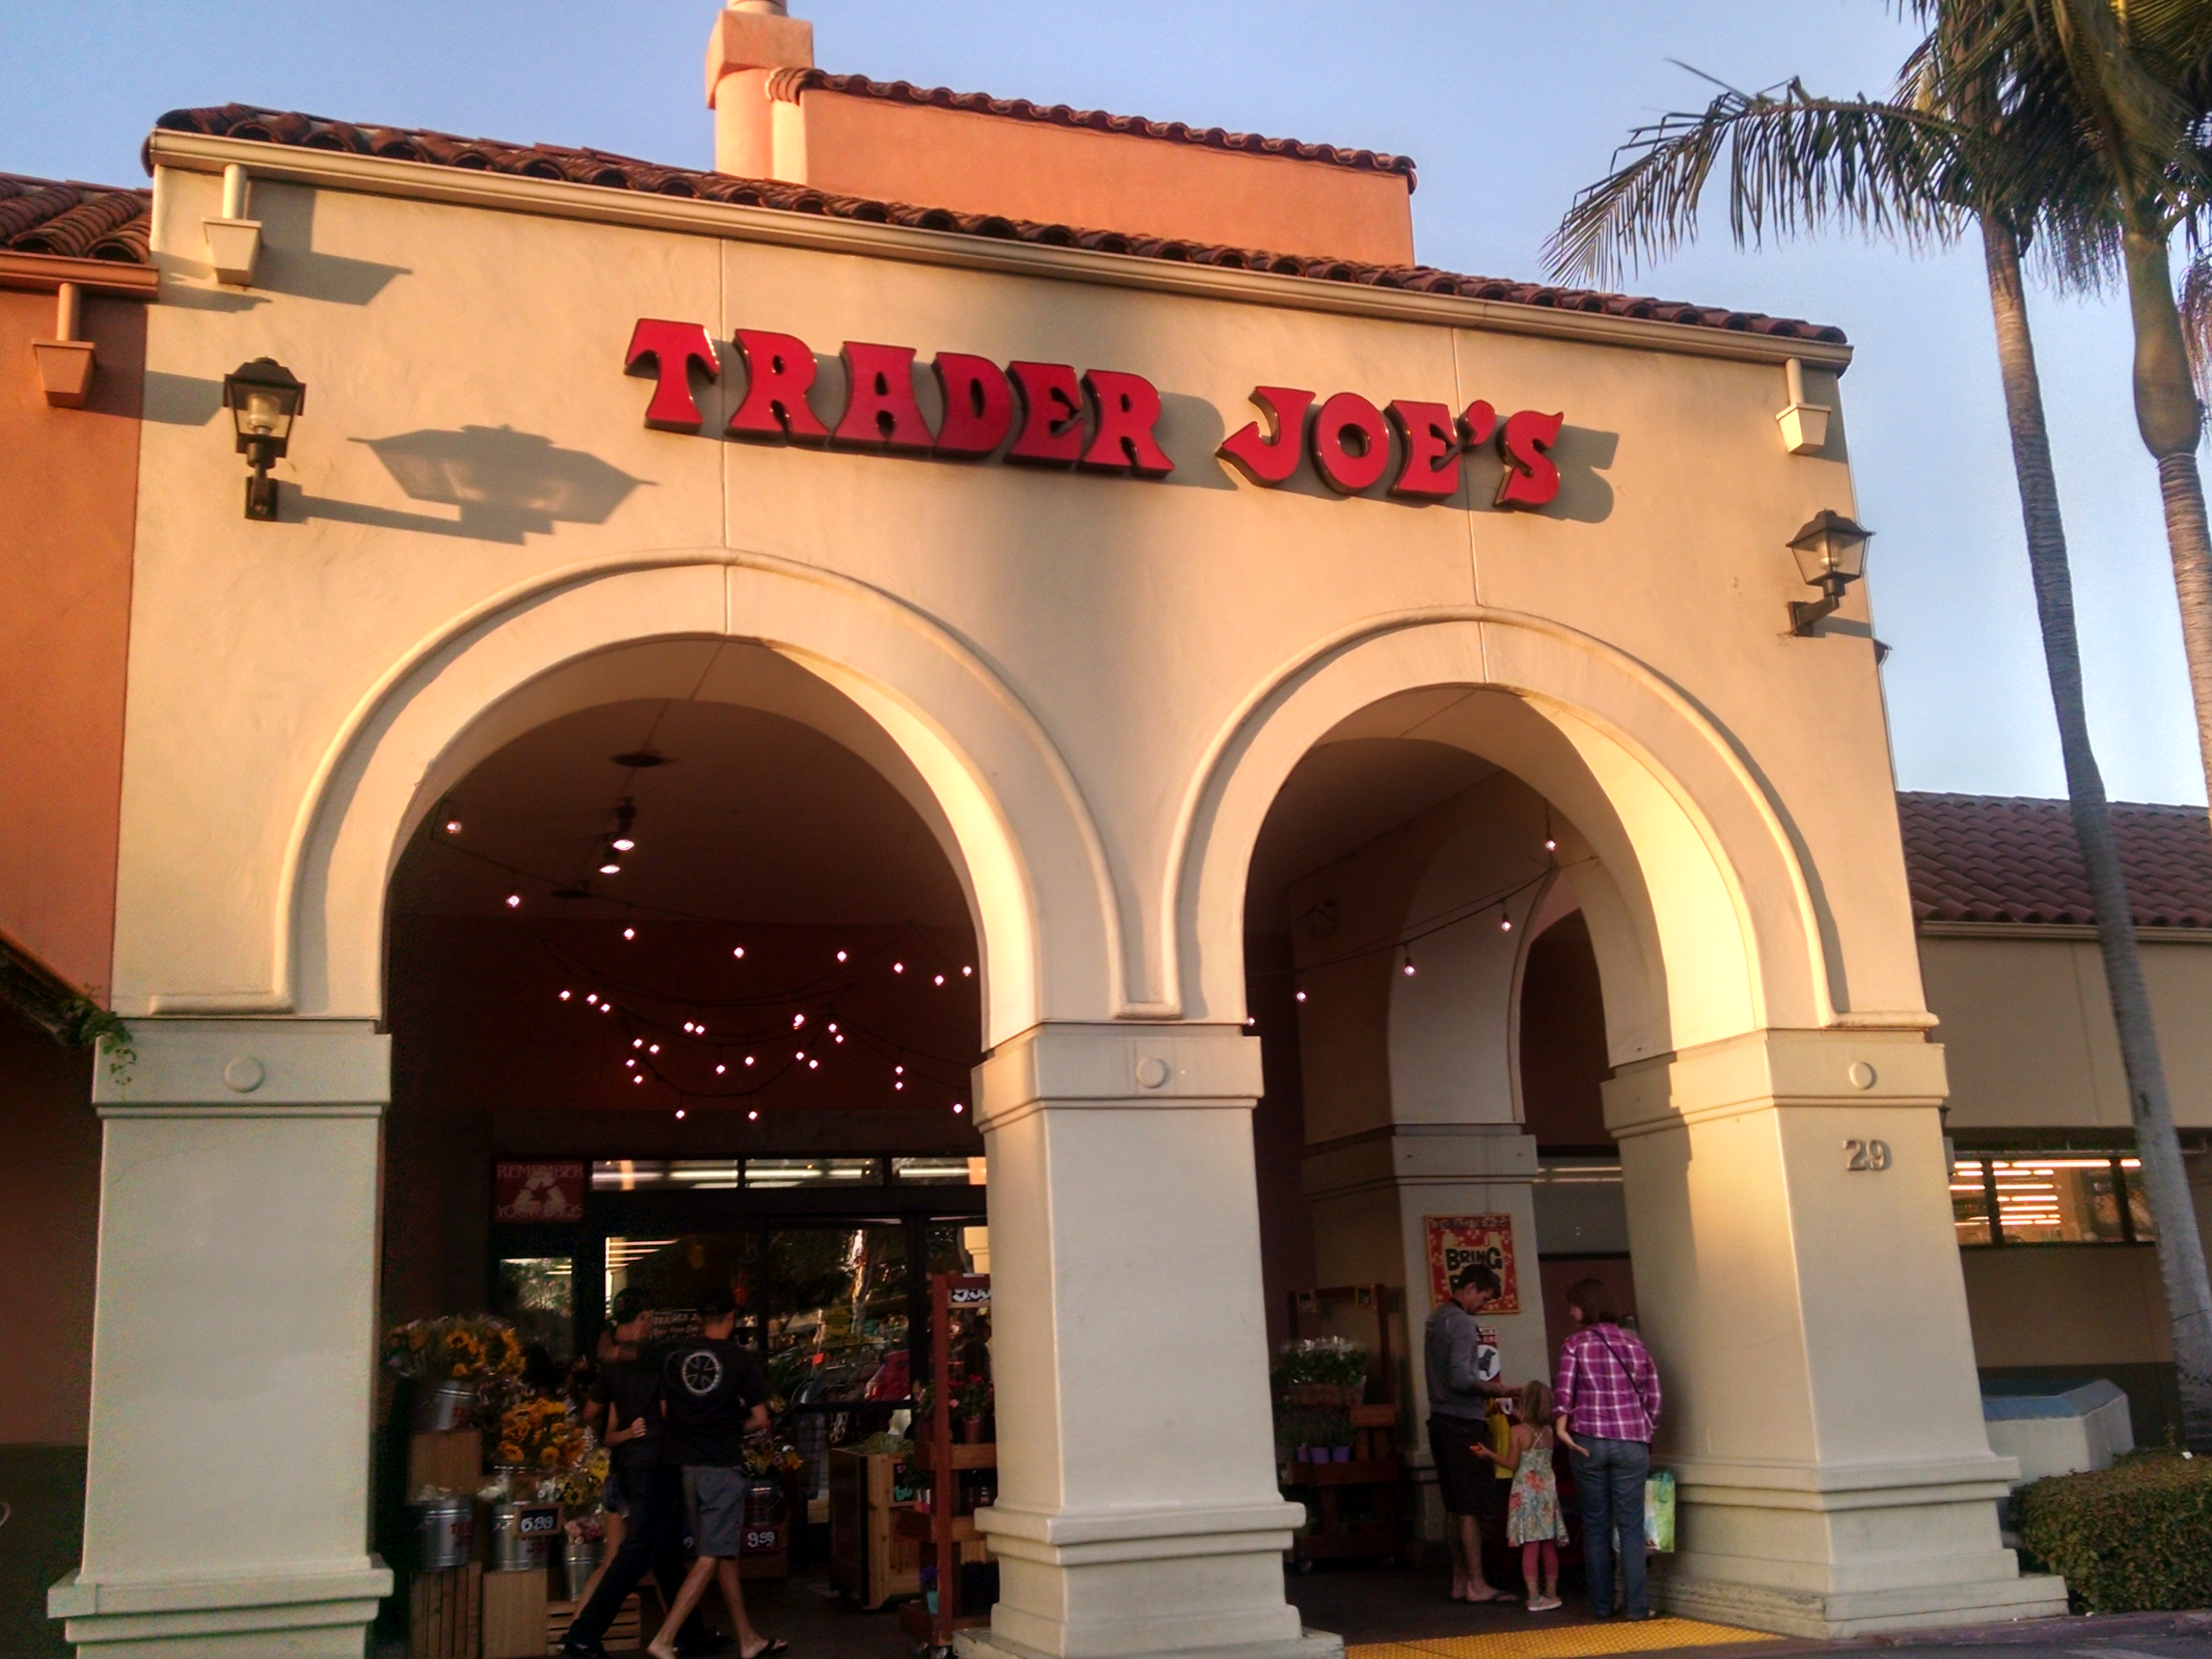 Random Act of Kindness at Trader Joe's